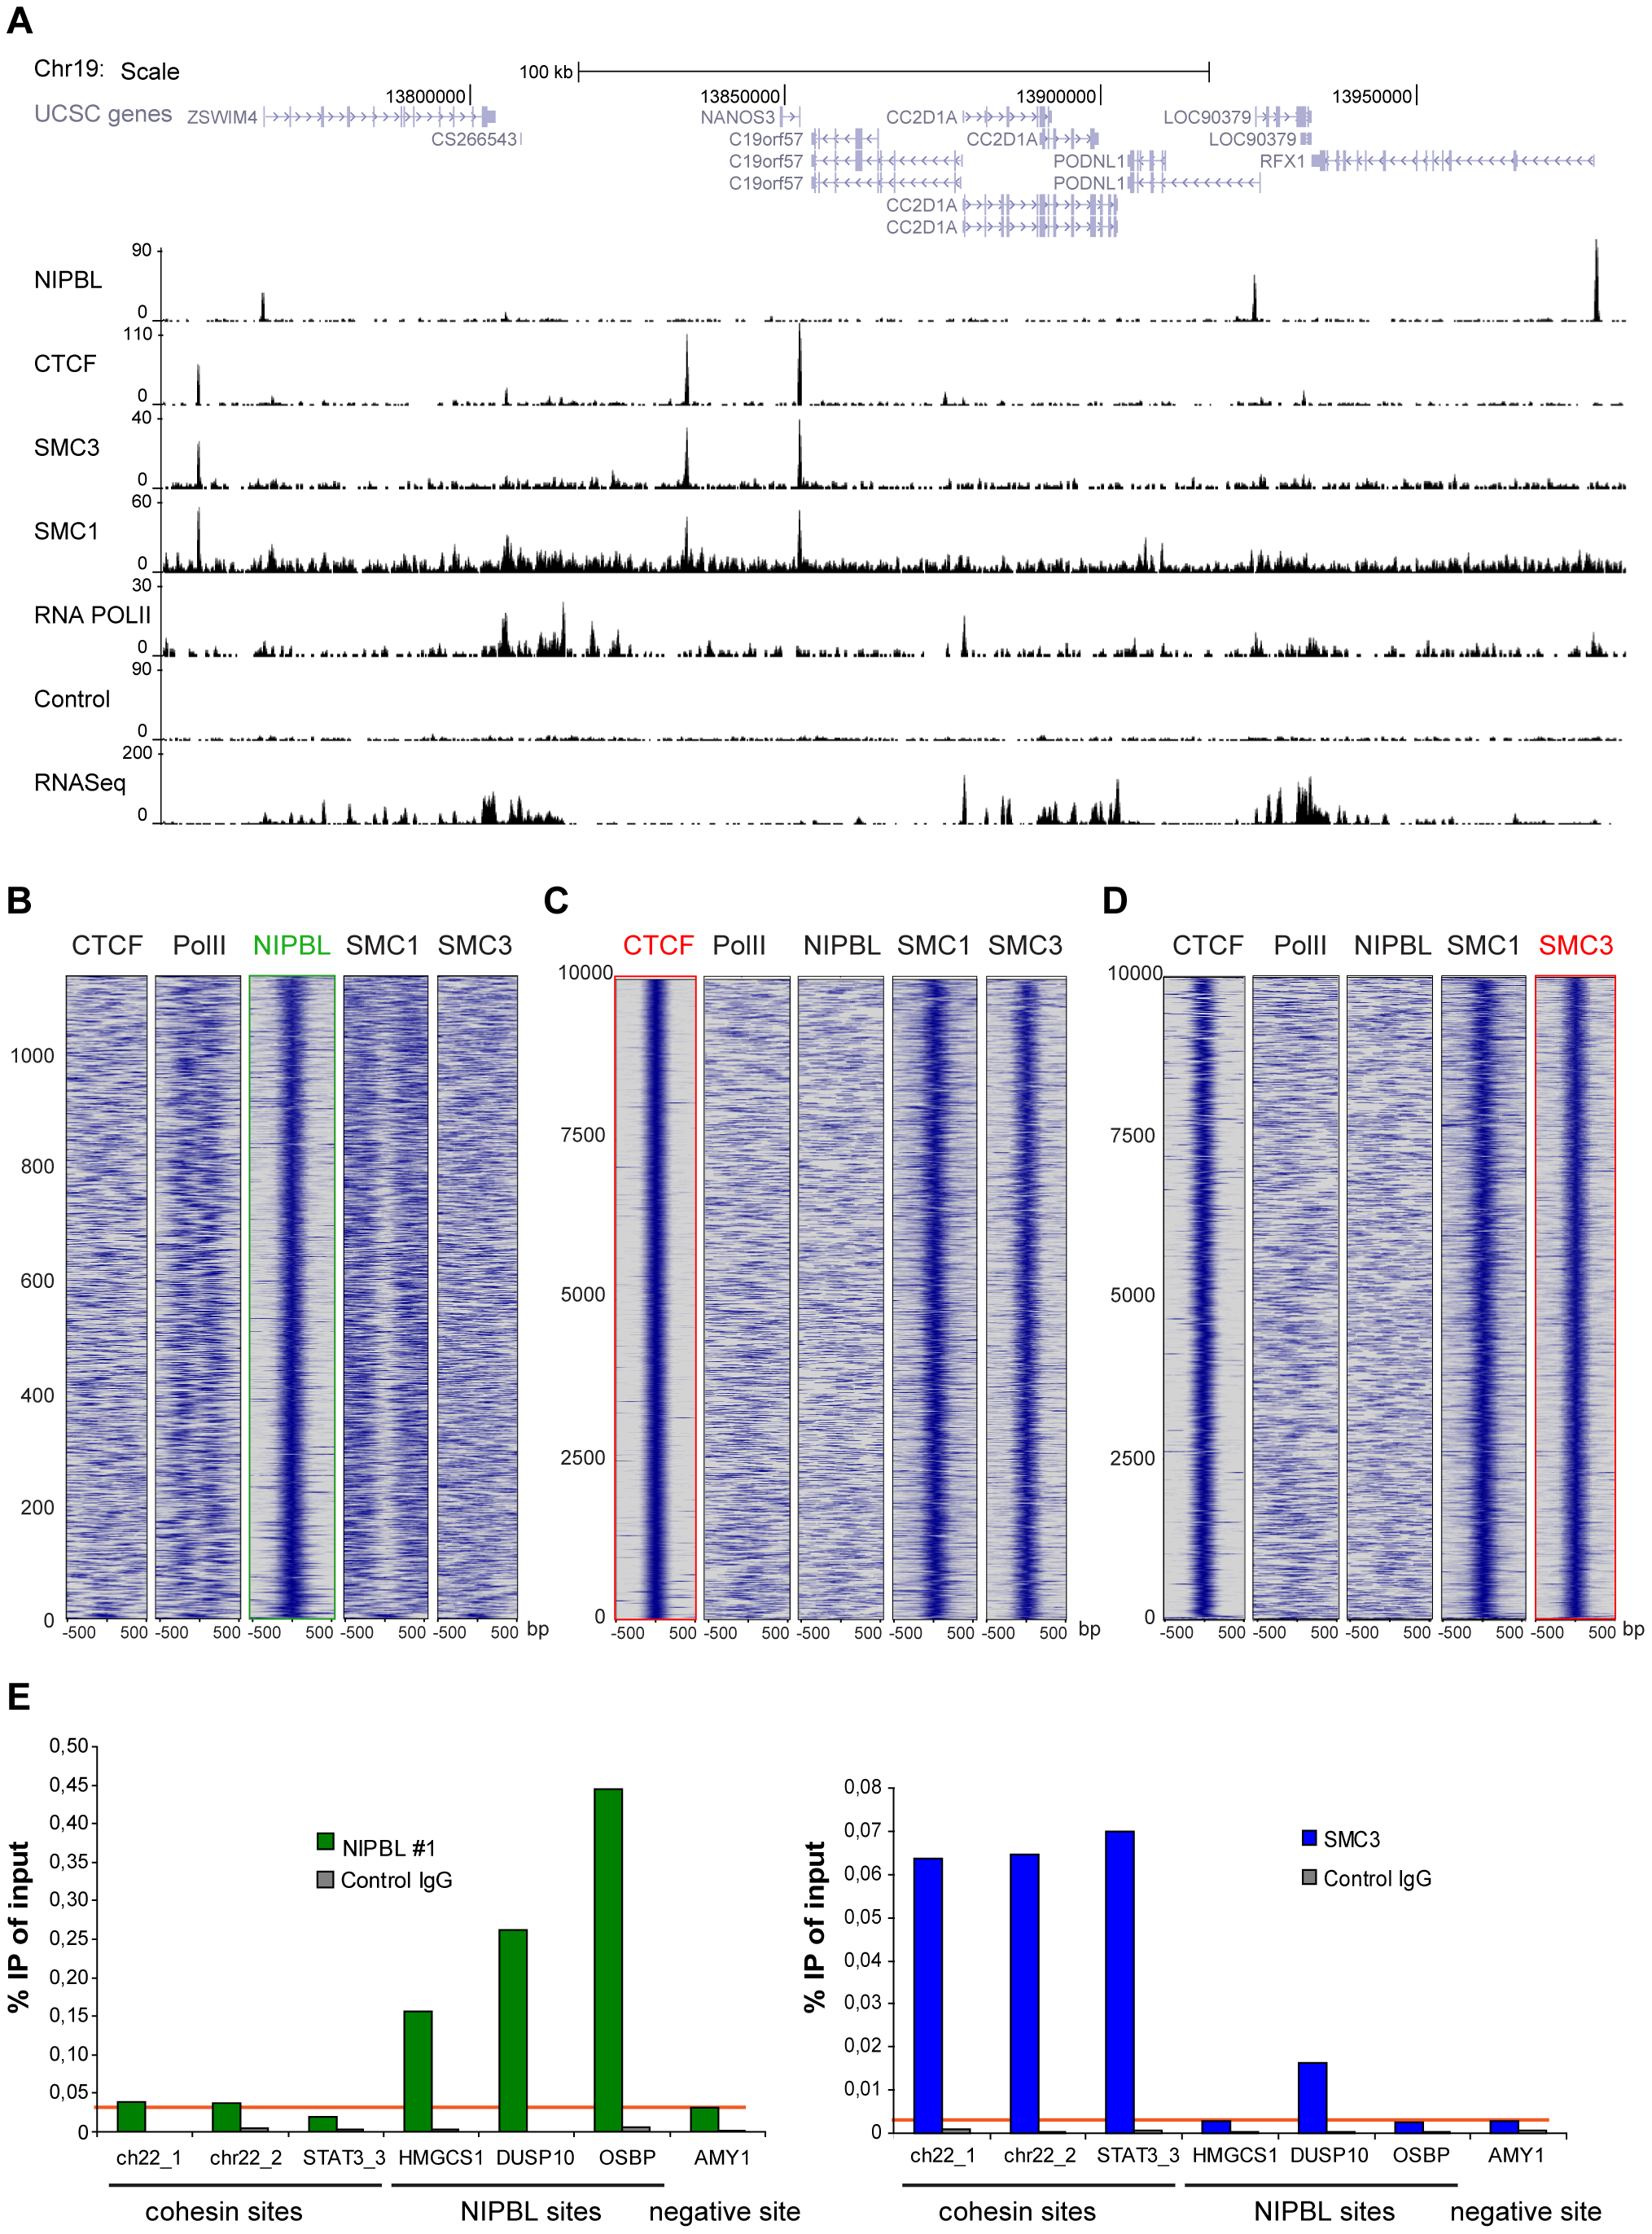 Binding of NIPBL, cohesin and CTCF in the human genome.